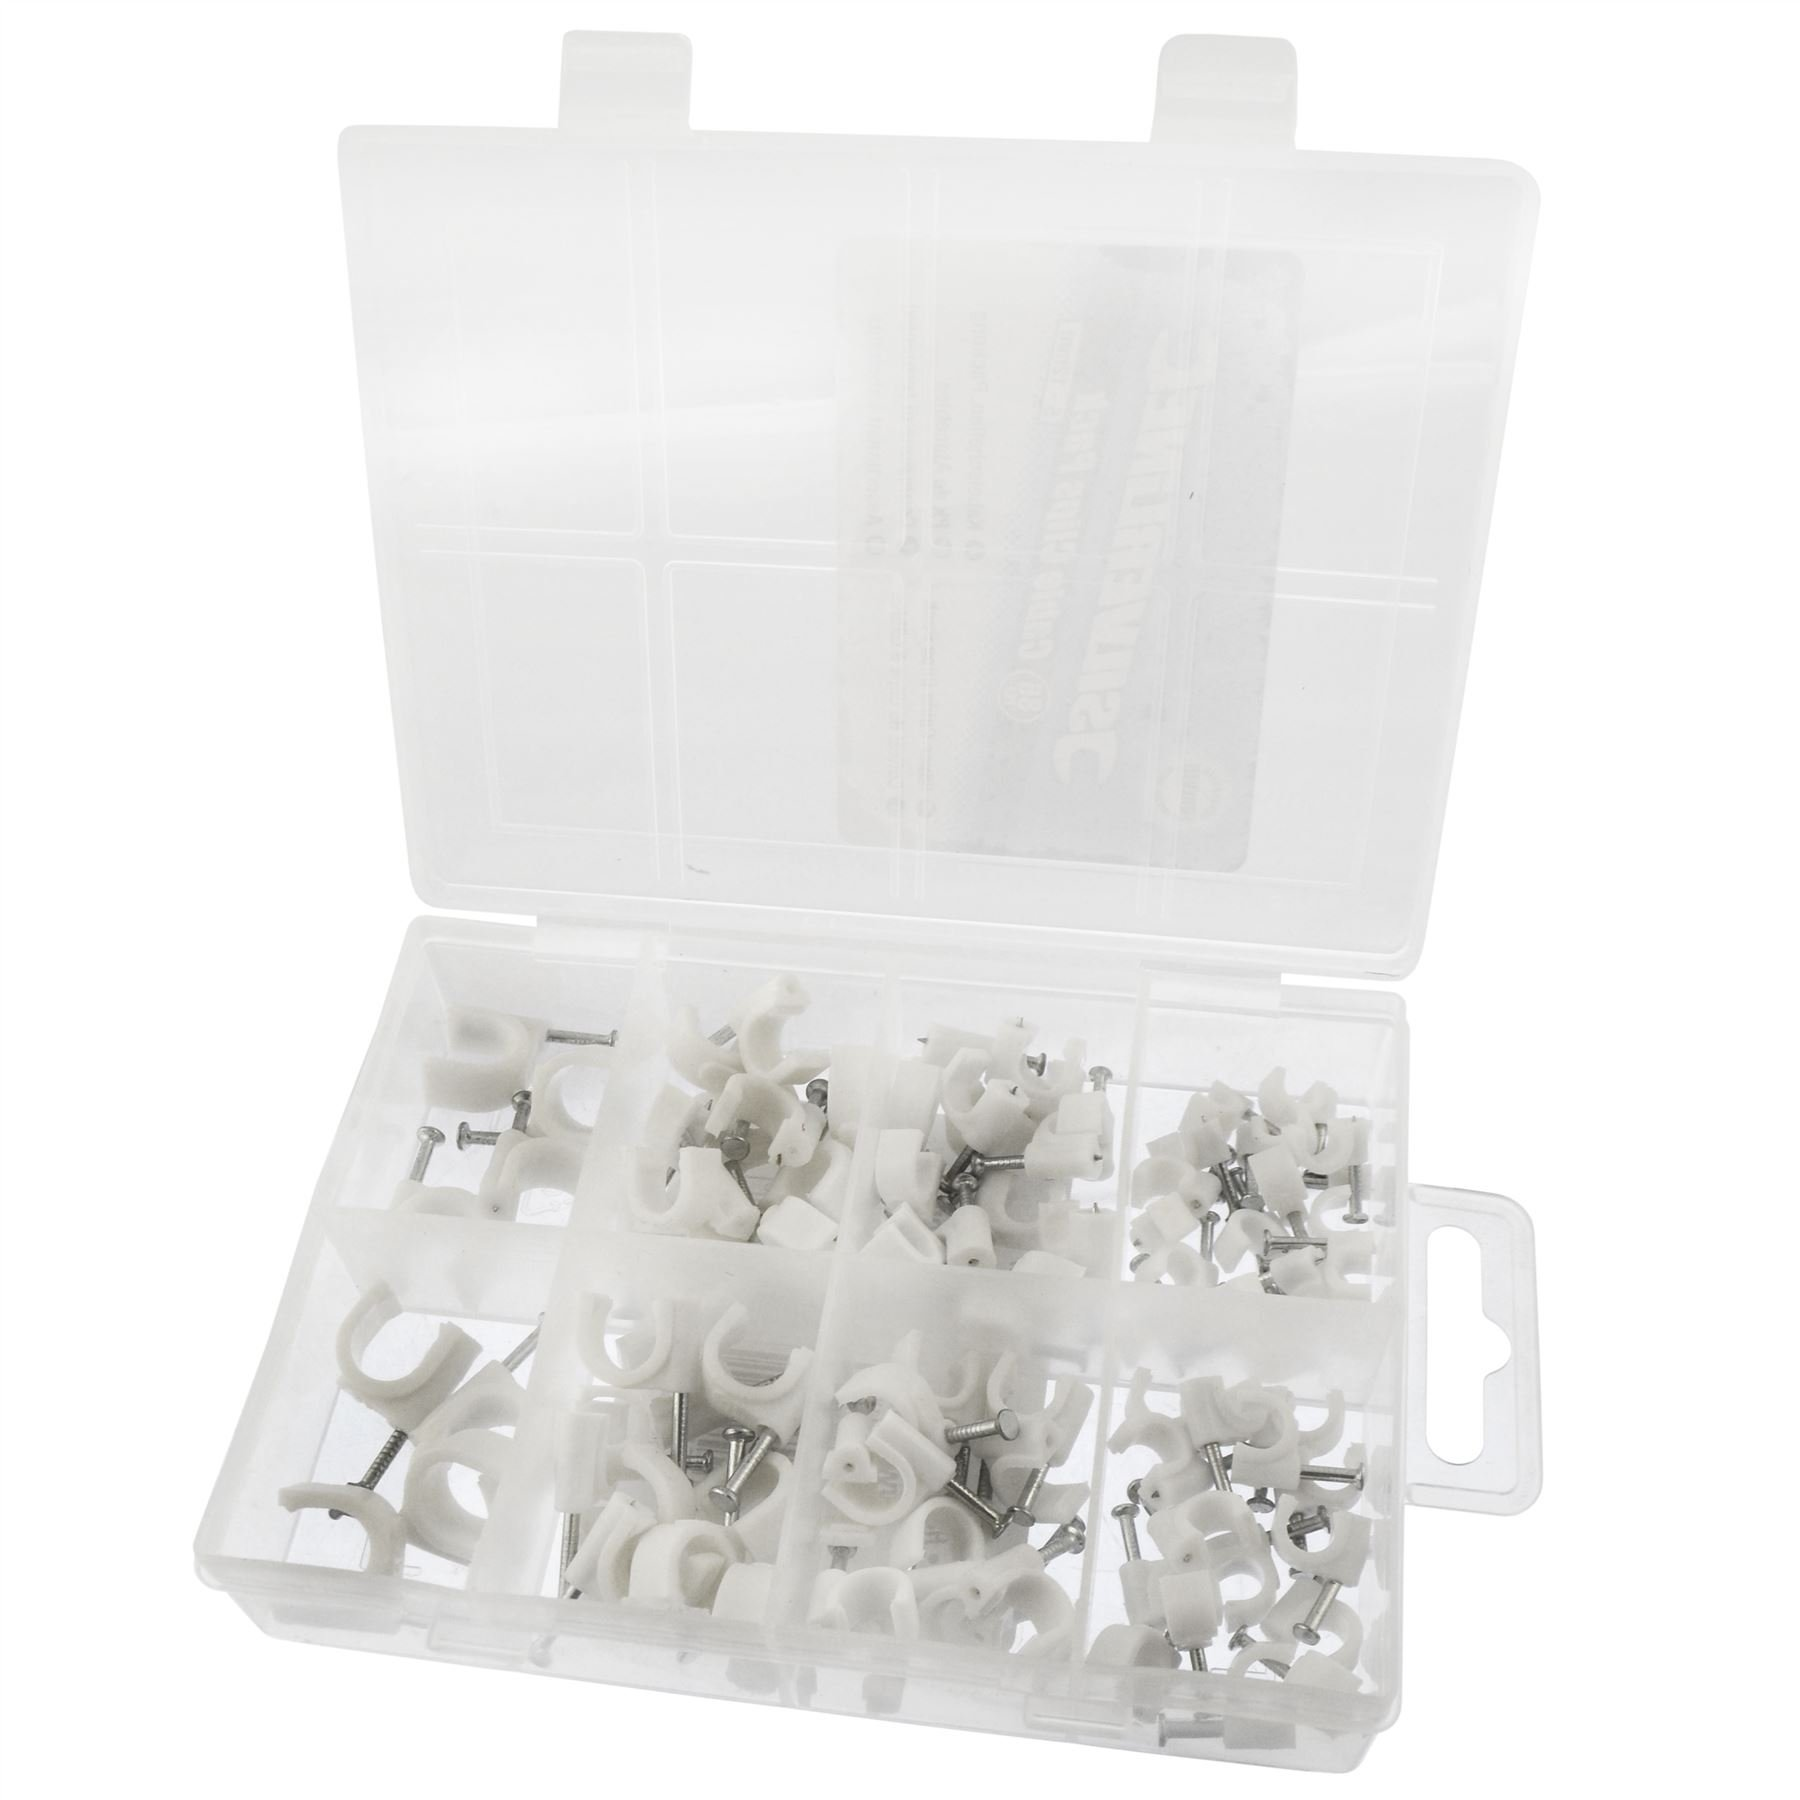 Cable clip pack - 86pc electrical wire fasteners SIL47